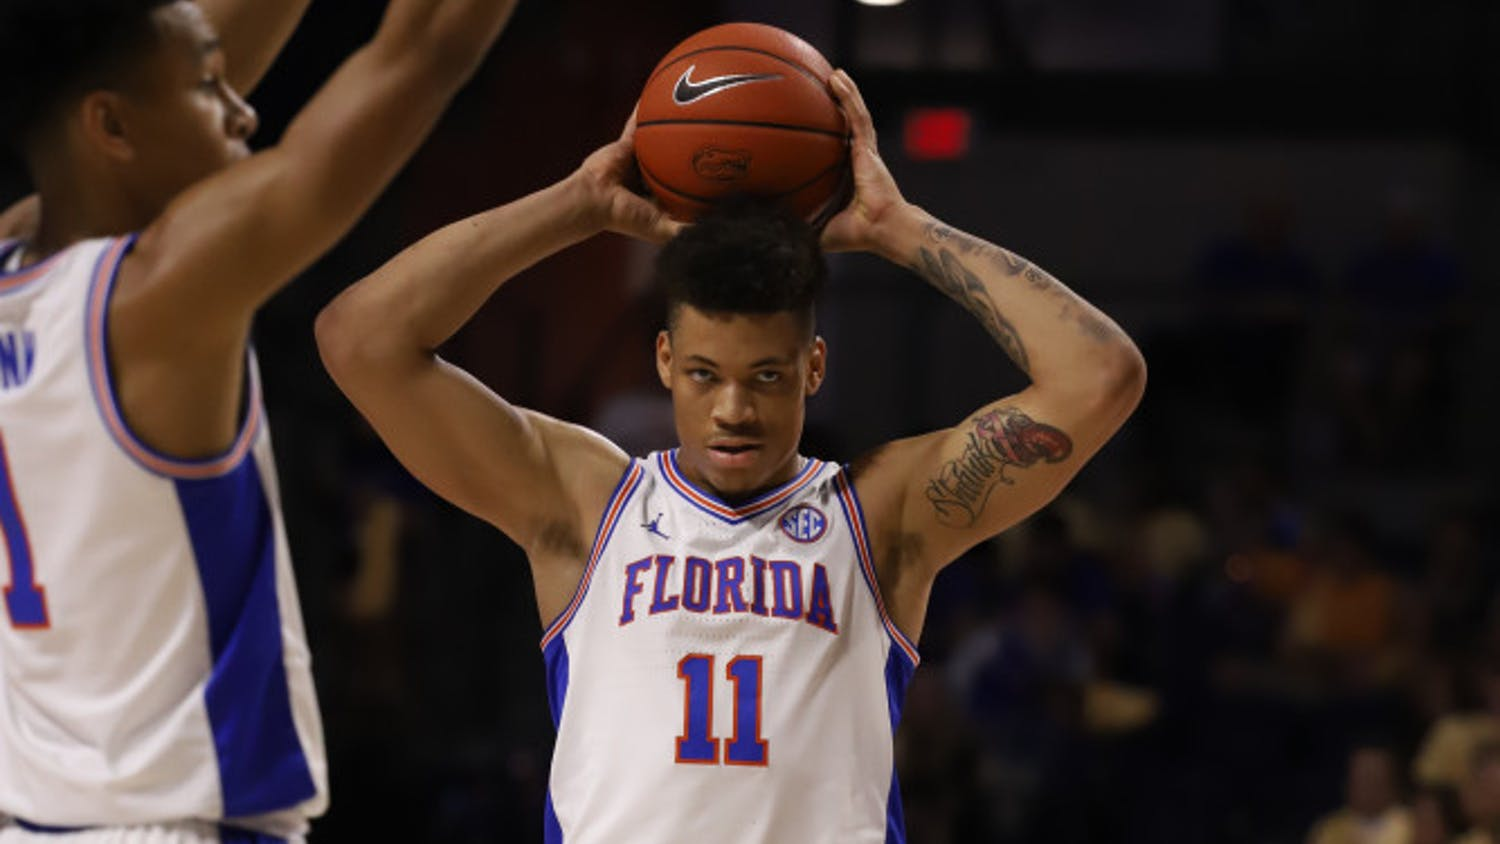 Junior Keyontae Johnson at the Gators' home game against Arkansas last season. Florida will allow up to 2,200 fans into the O'Connell Center for basketball games this season.